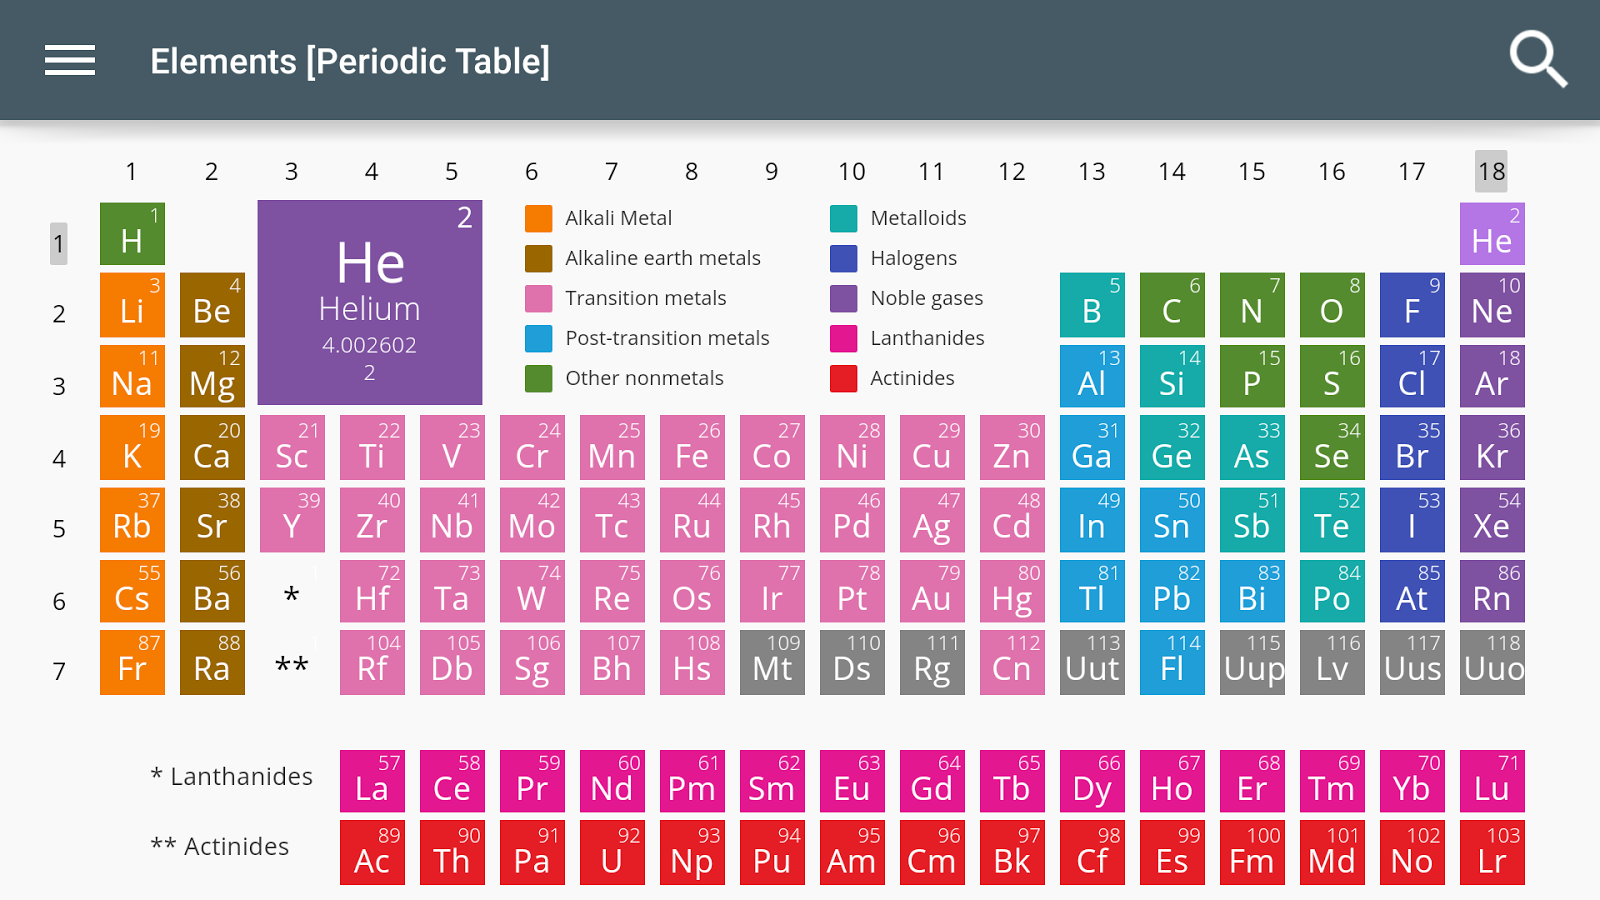 Elements periodic table android apps on google play elements periodic table screenshot gamestrikefo Gallery